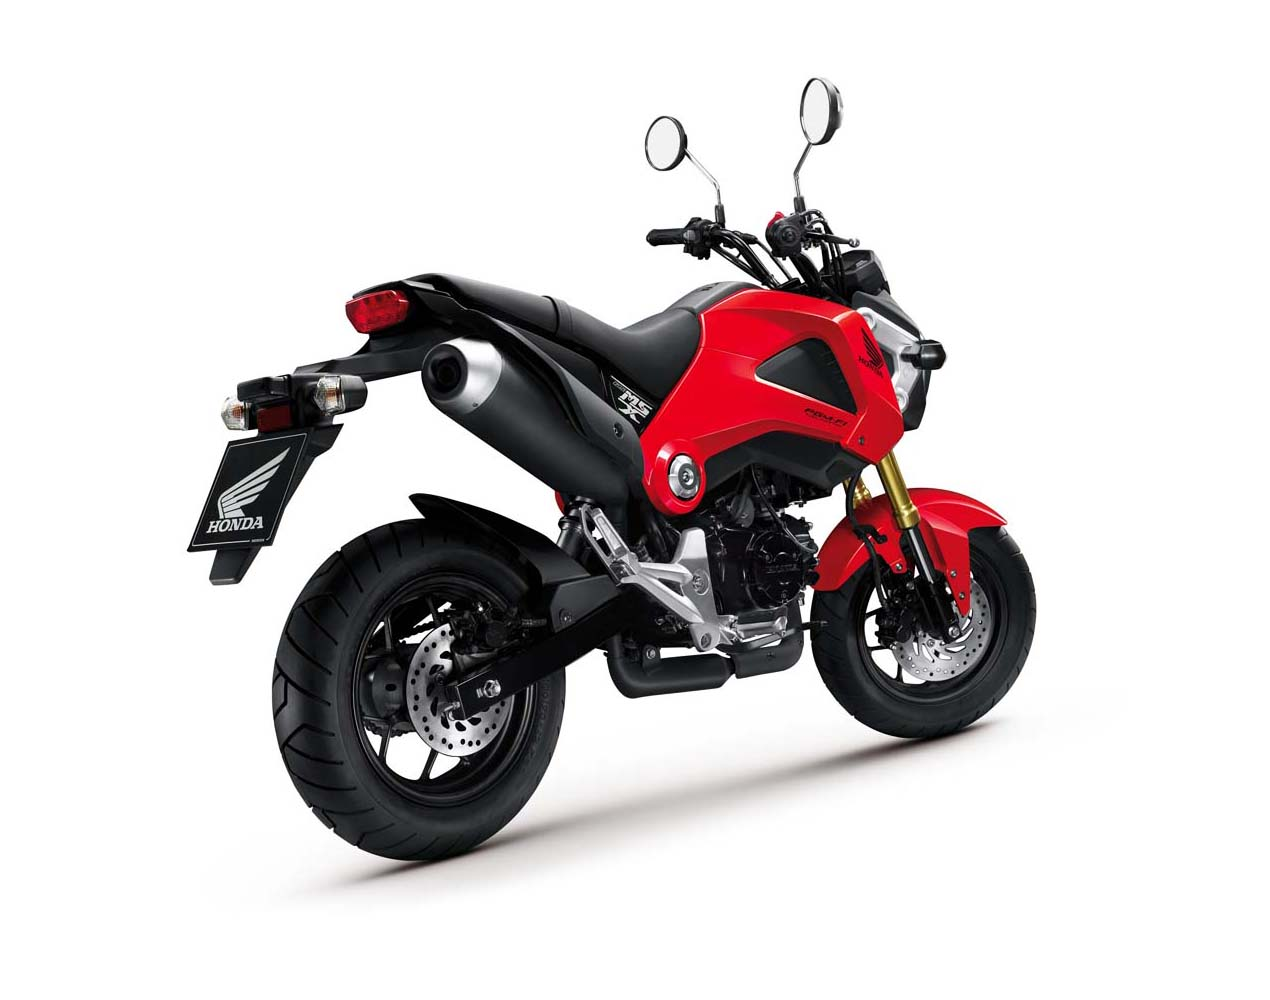 2013 honda msx125 detailed pictures autoevolution. Black Bedroom Furniture Sets. Home Design Ideas